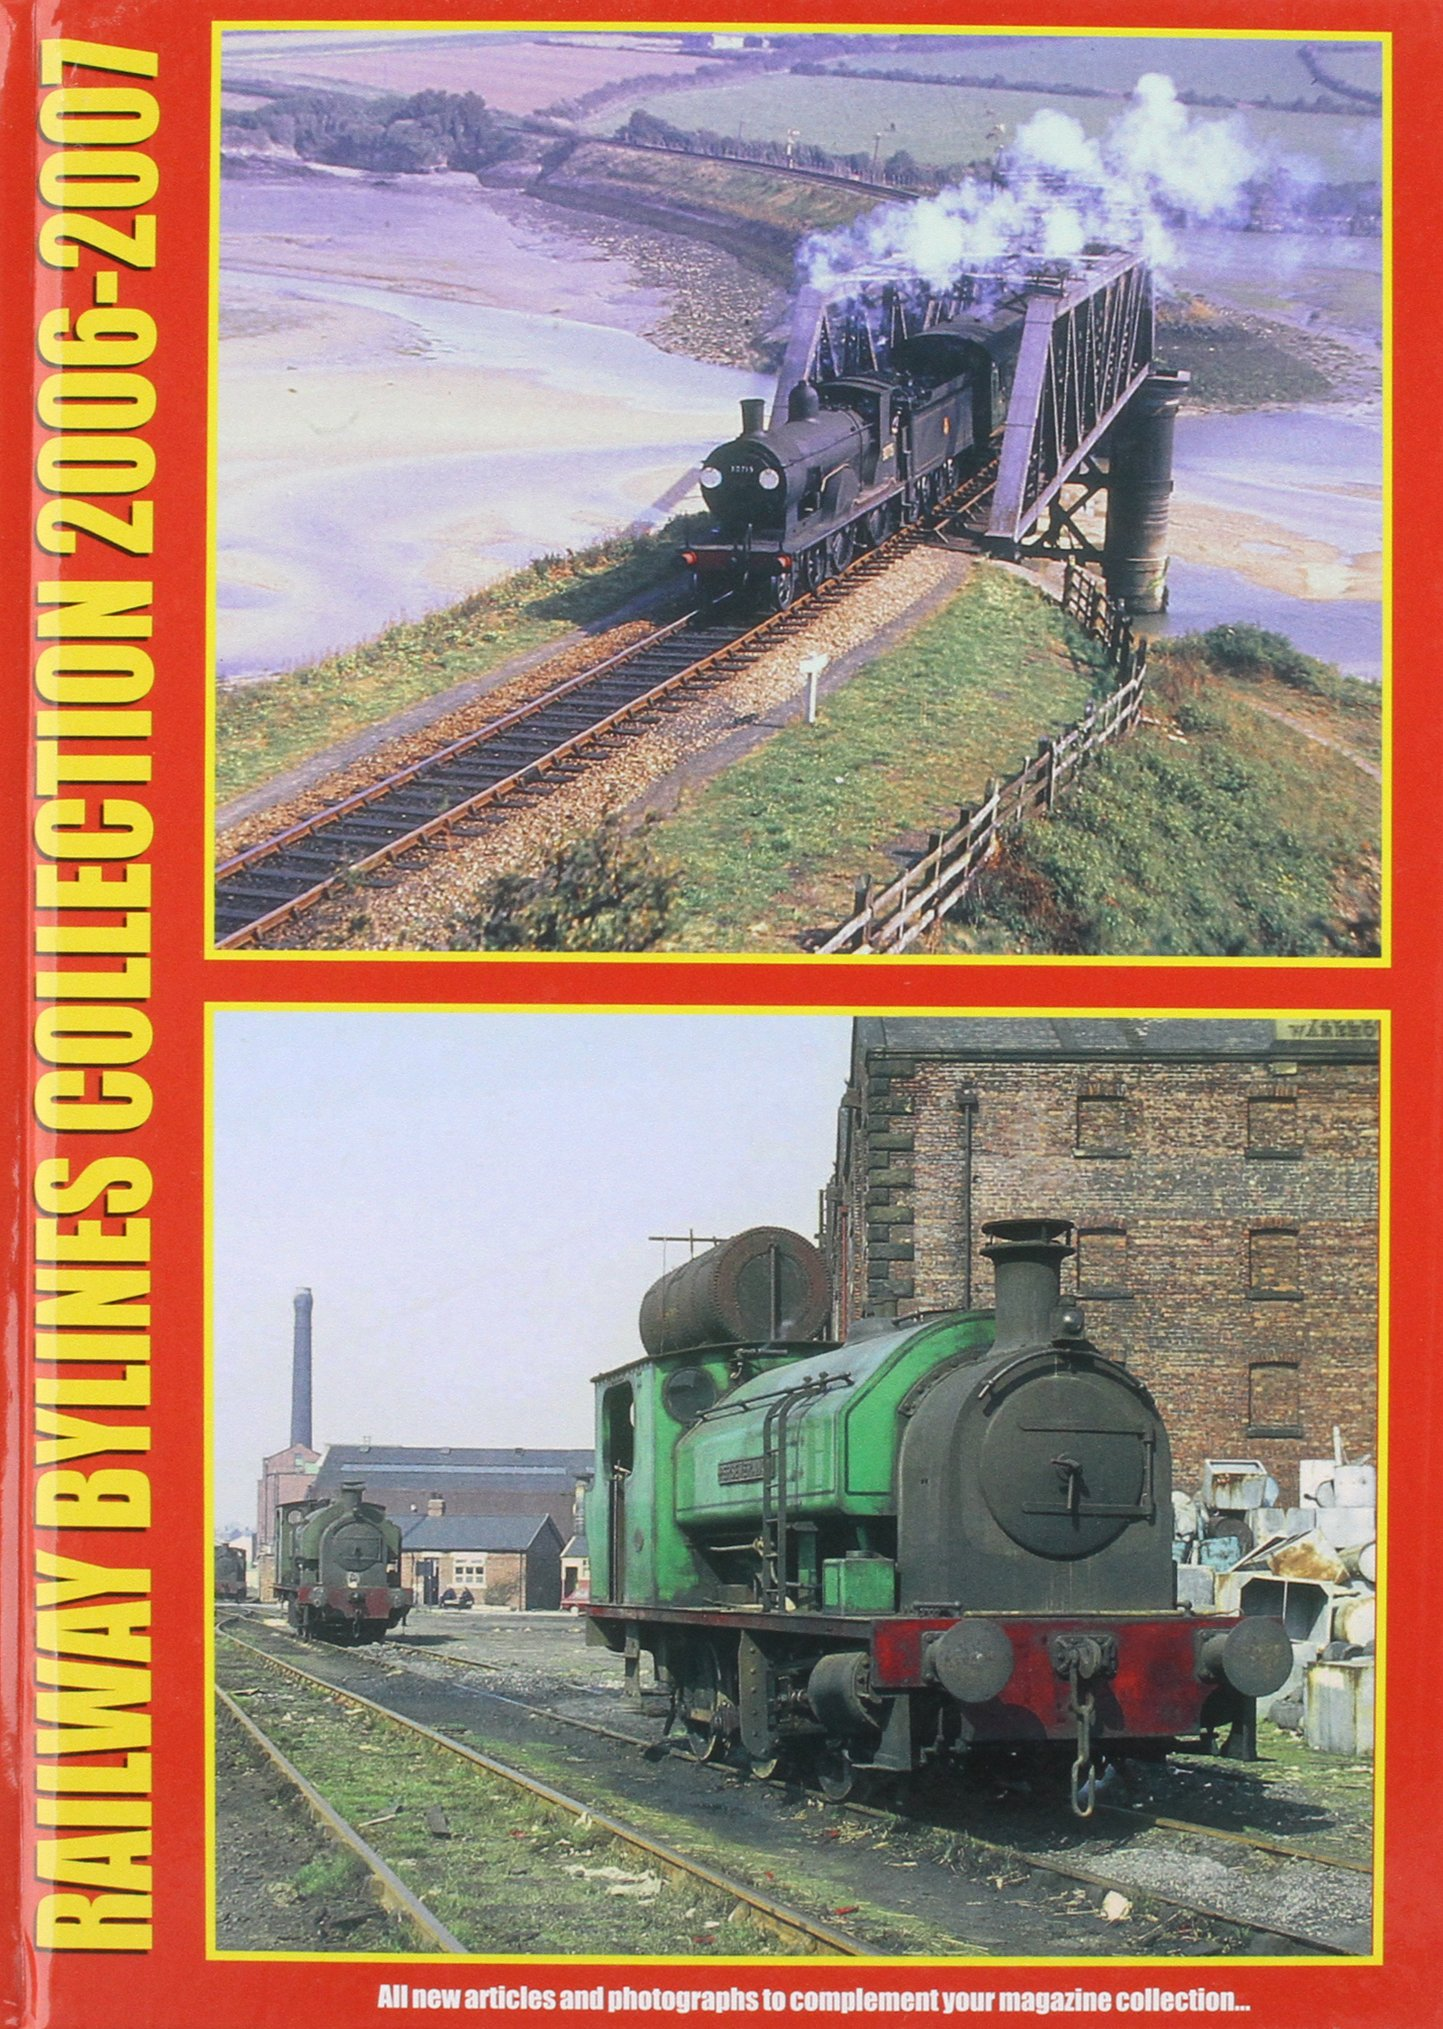 Download Railway Bylines Collection 2006 - 2007 PDF